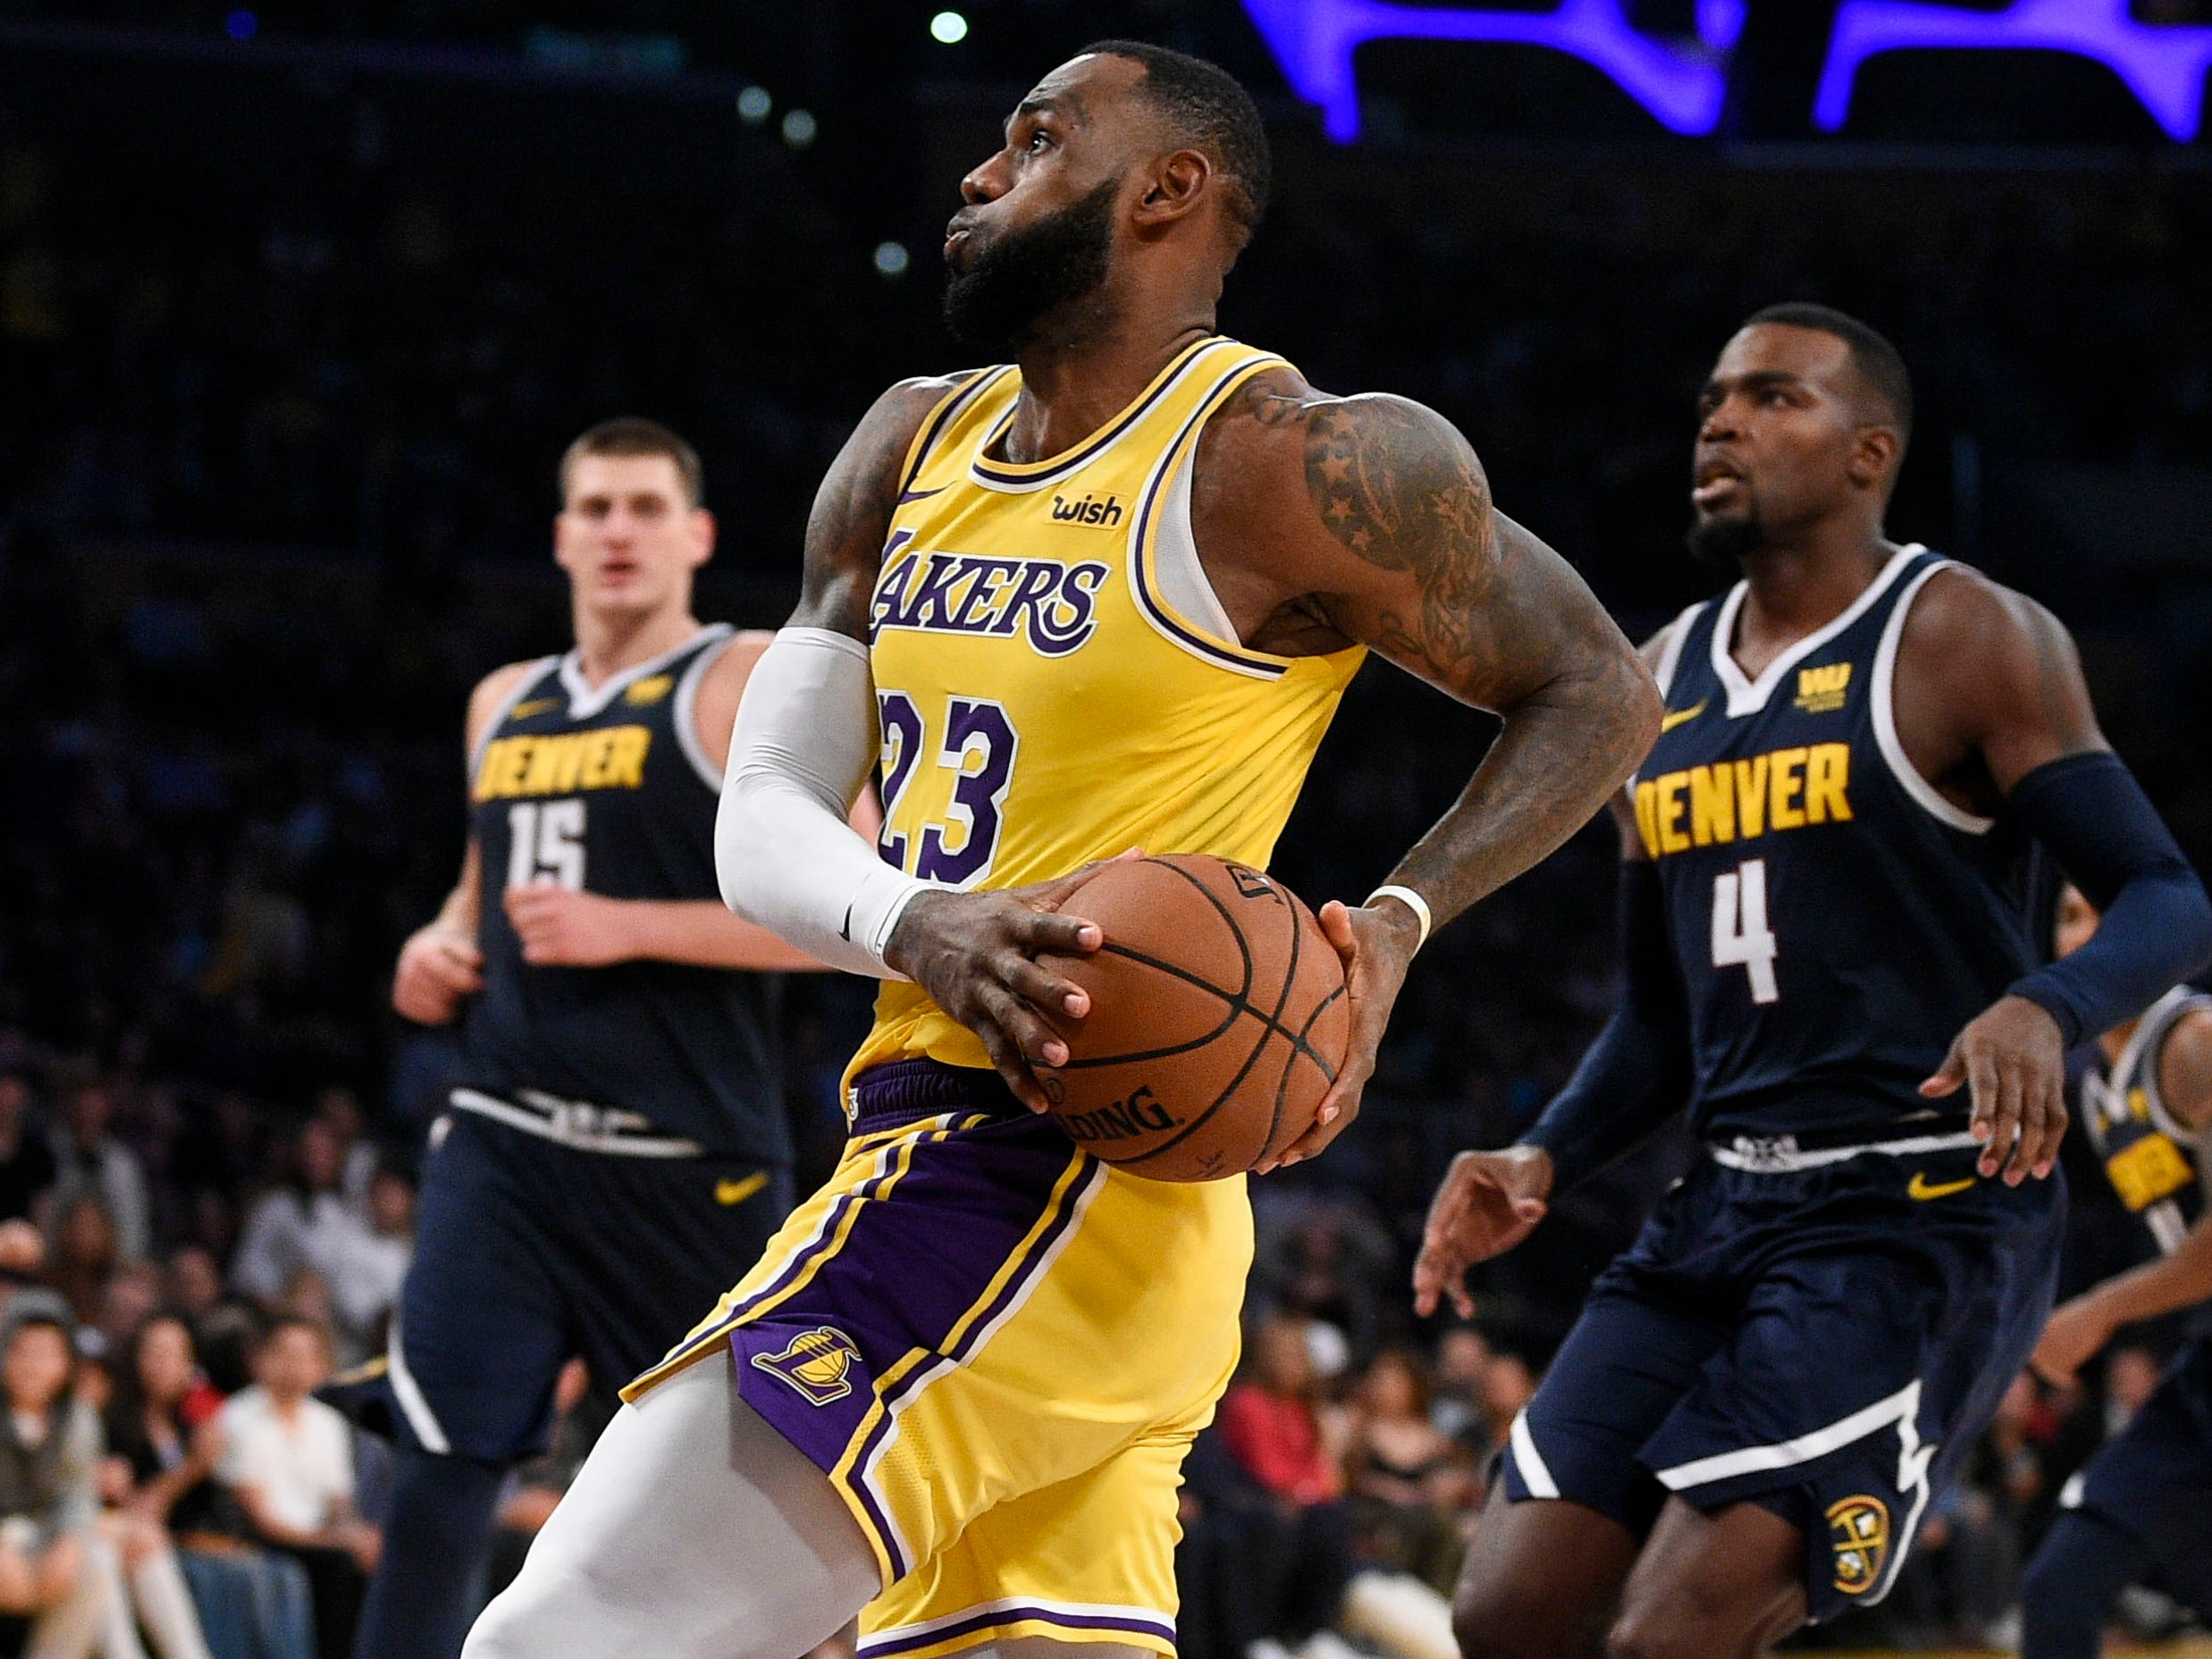 7. LeBron James, Lakers (Oct. 25): 28 points, 11 assists, 11 rebounds in 121-114 win over Nuggets.